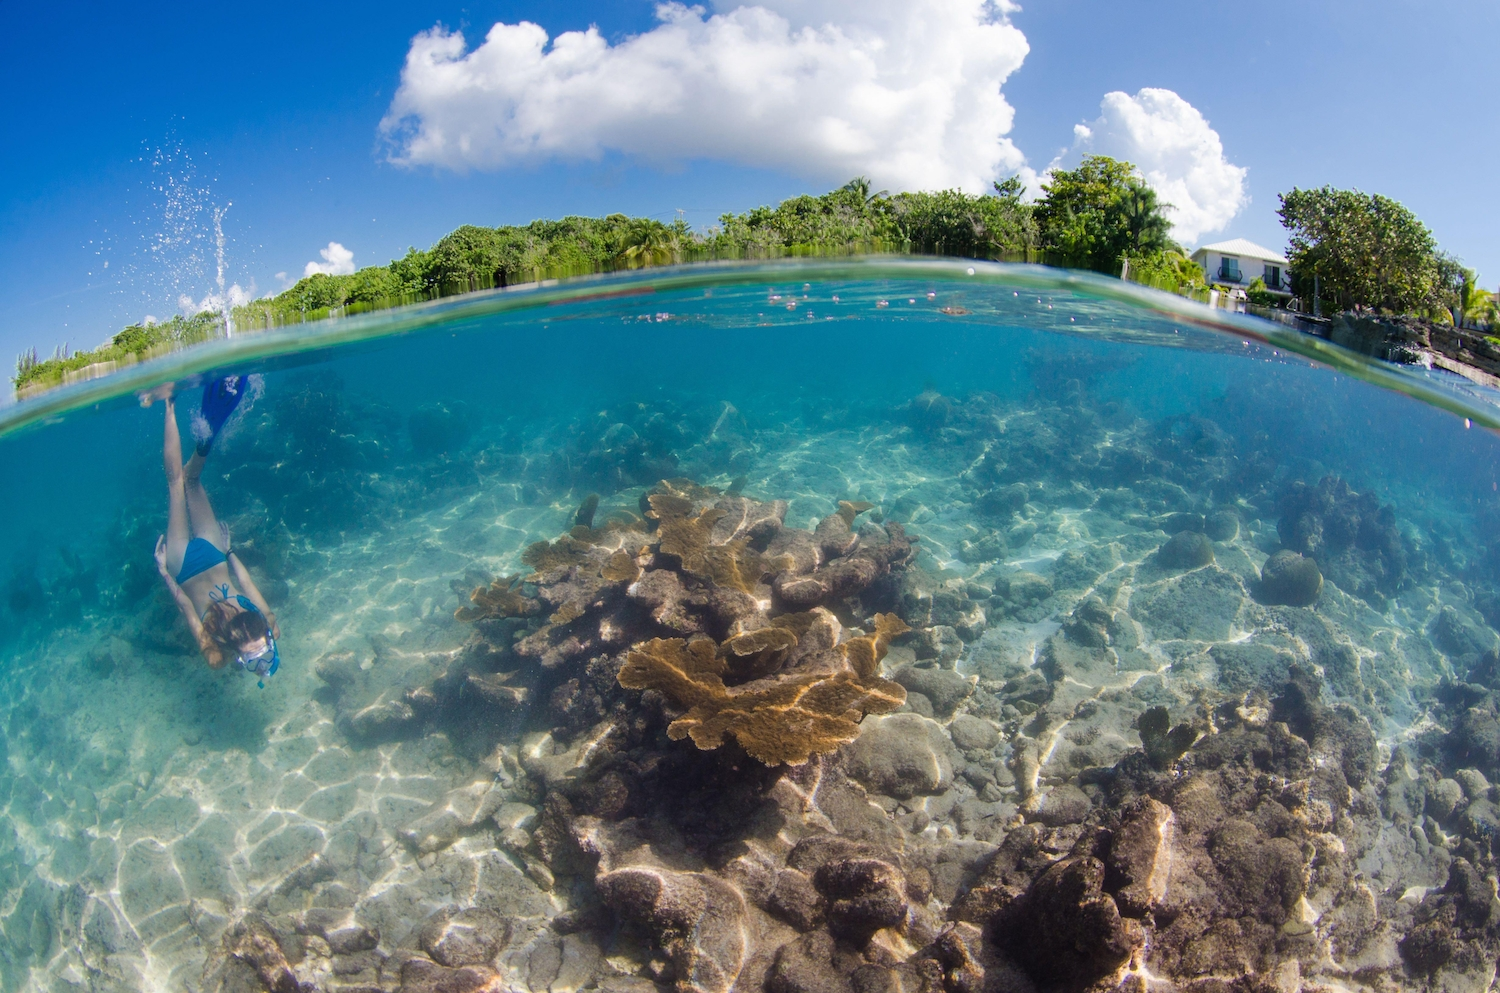 Over under of woman with blue fins and blue bikini freediving